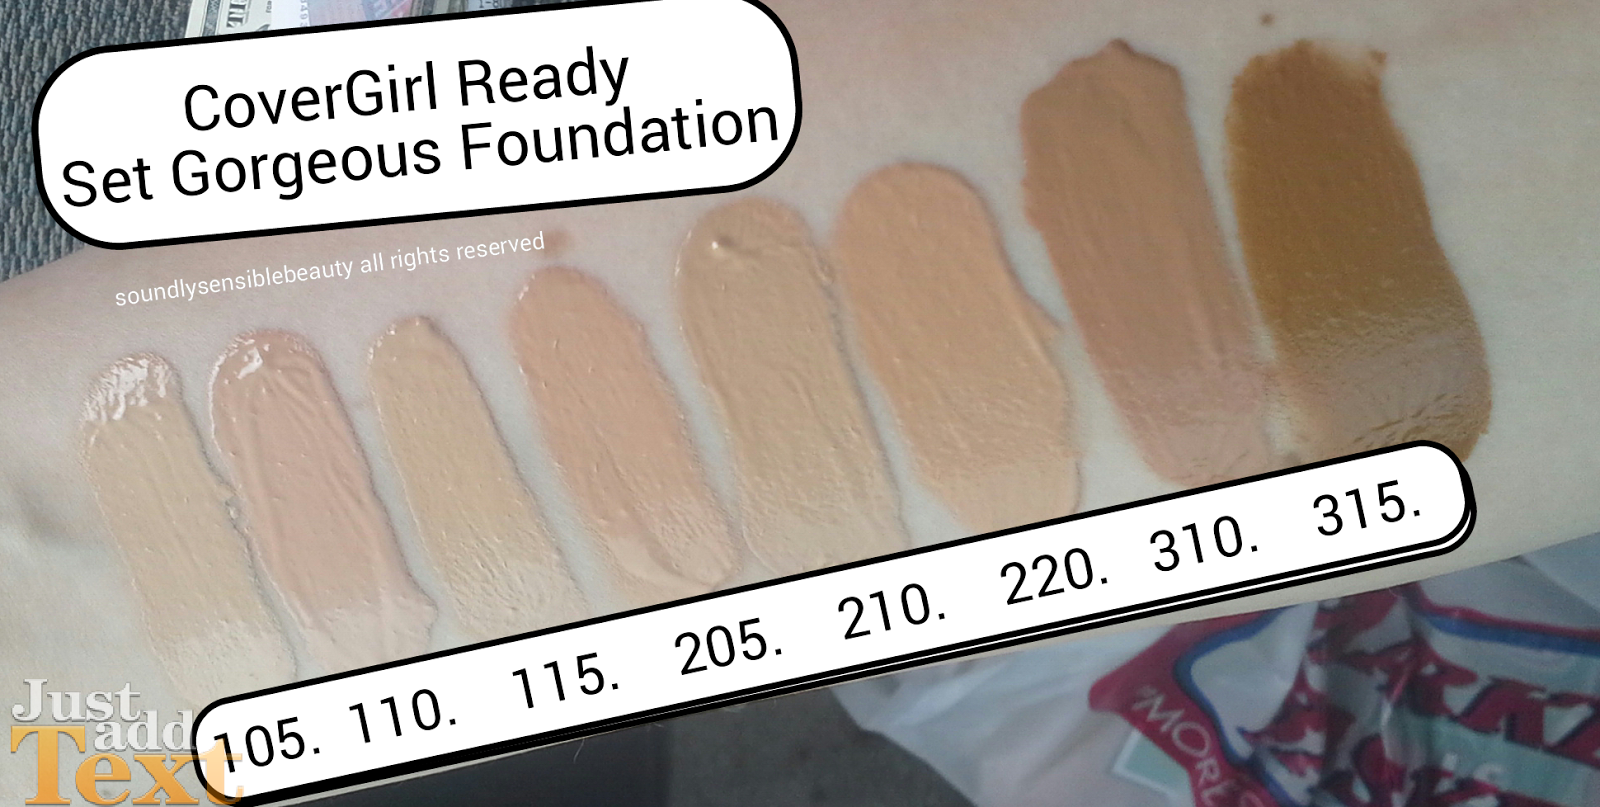 CoverGirl Ready Set Gorgeous Foundation; Review & Swatches of Shades